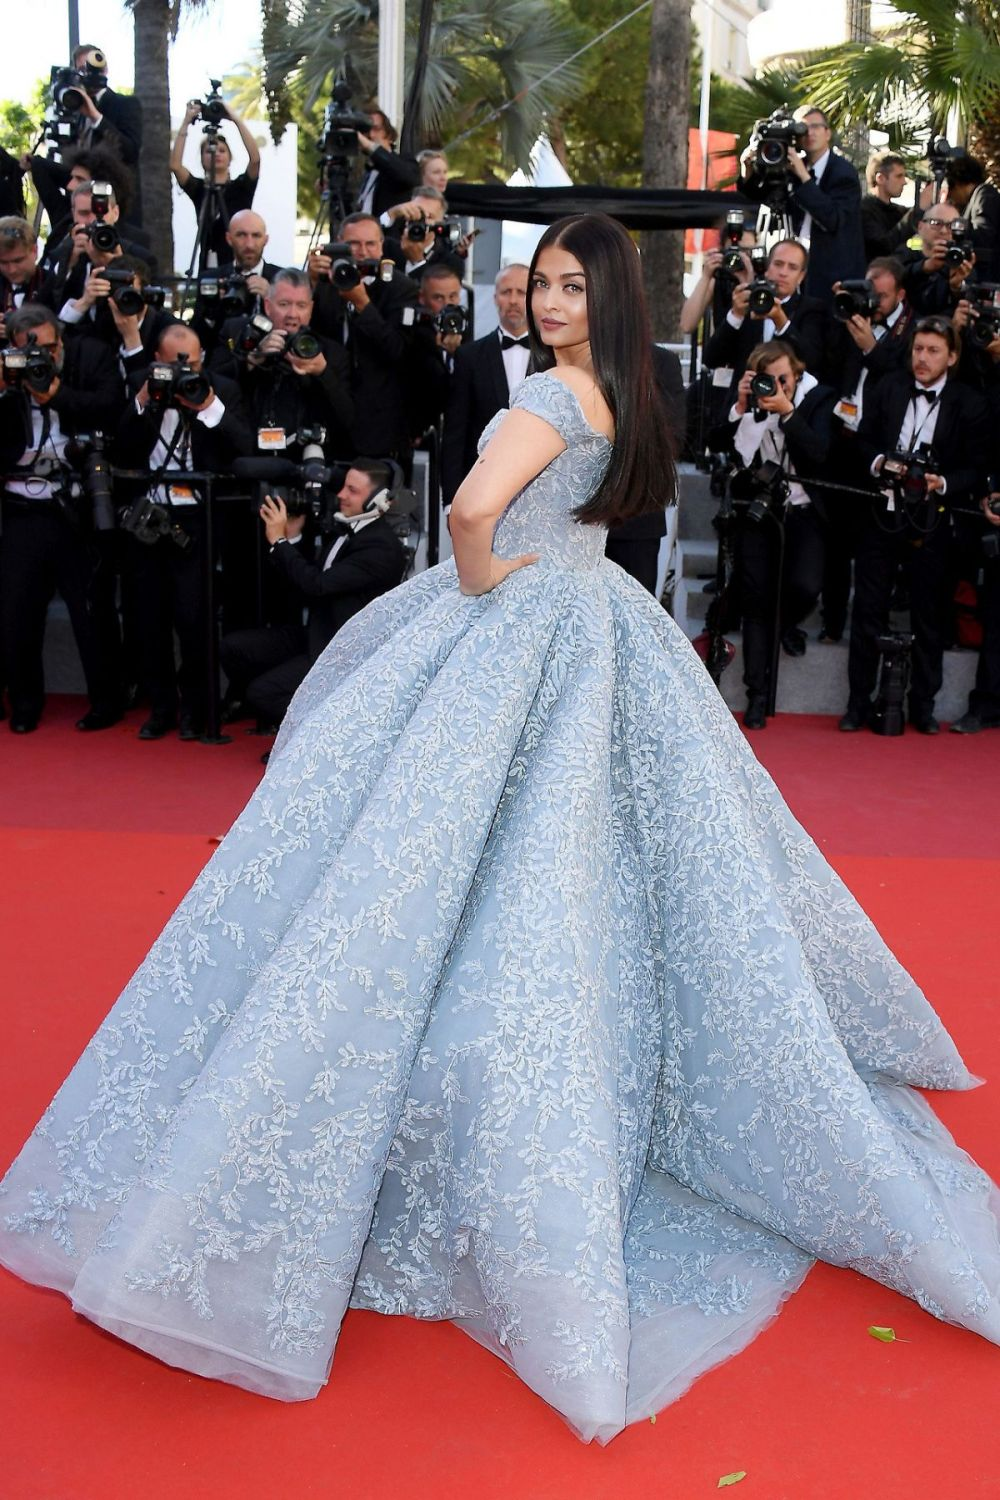 aishwarya-rai-at-okja-premiere-at-70th-annual-cannes-film-festival-05-19-2017_1